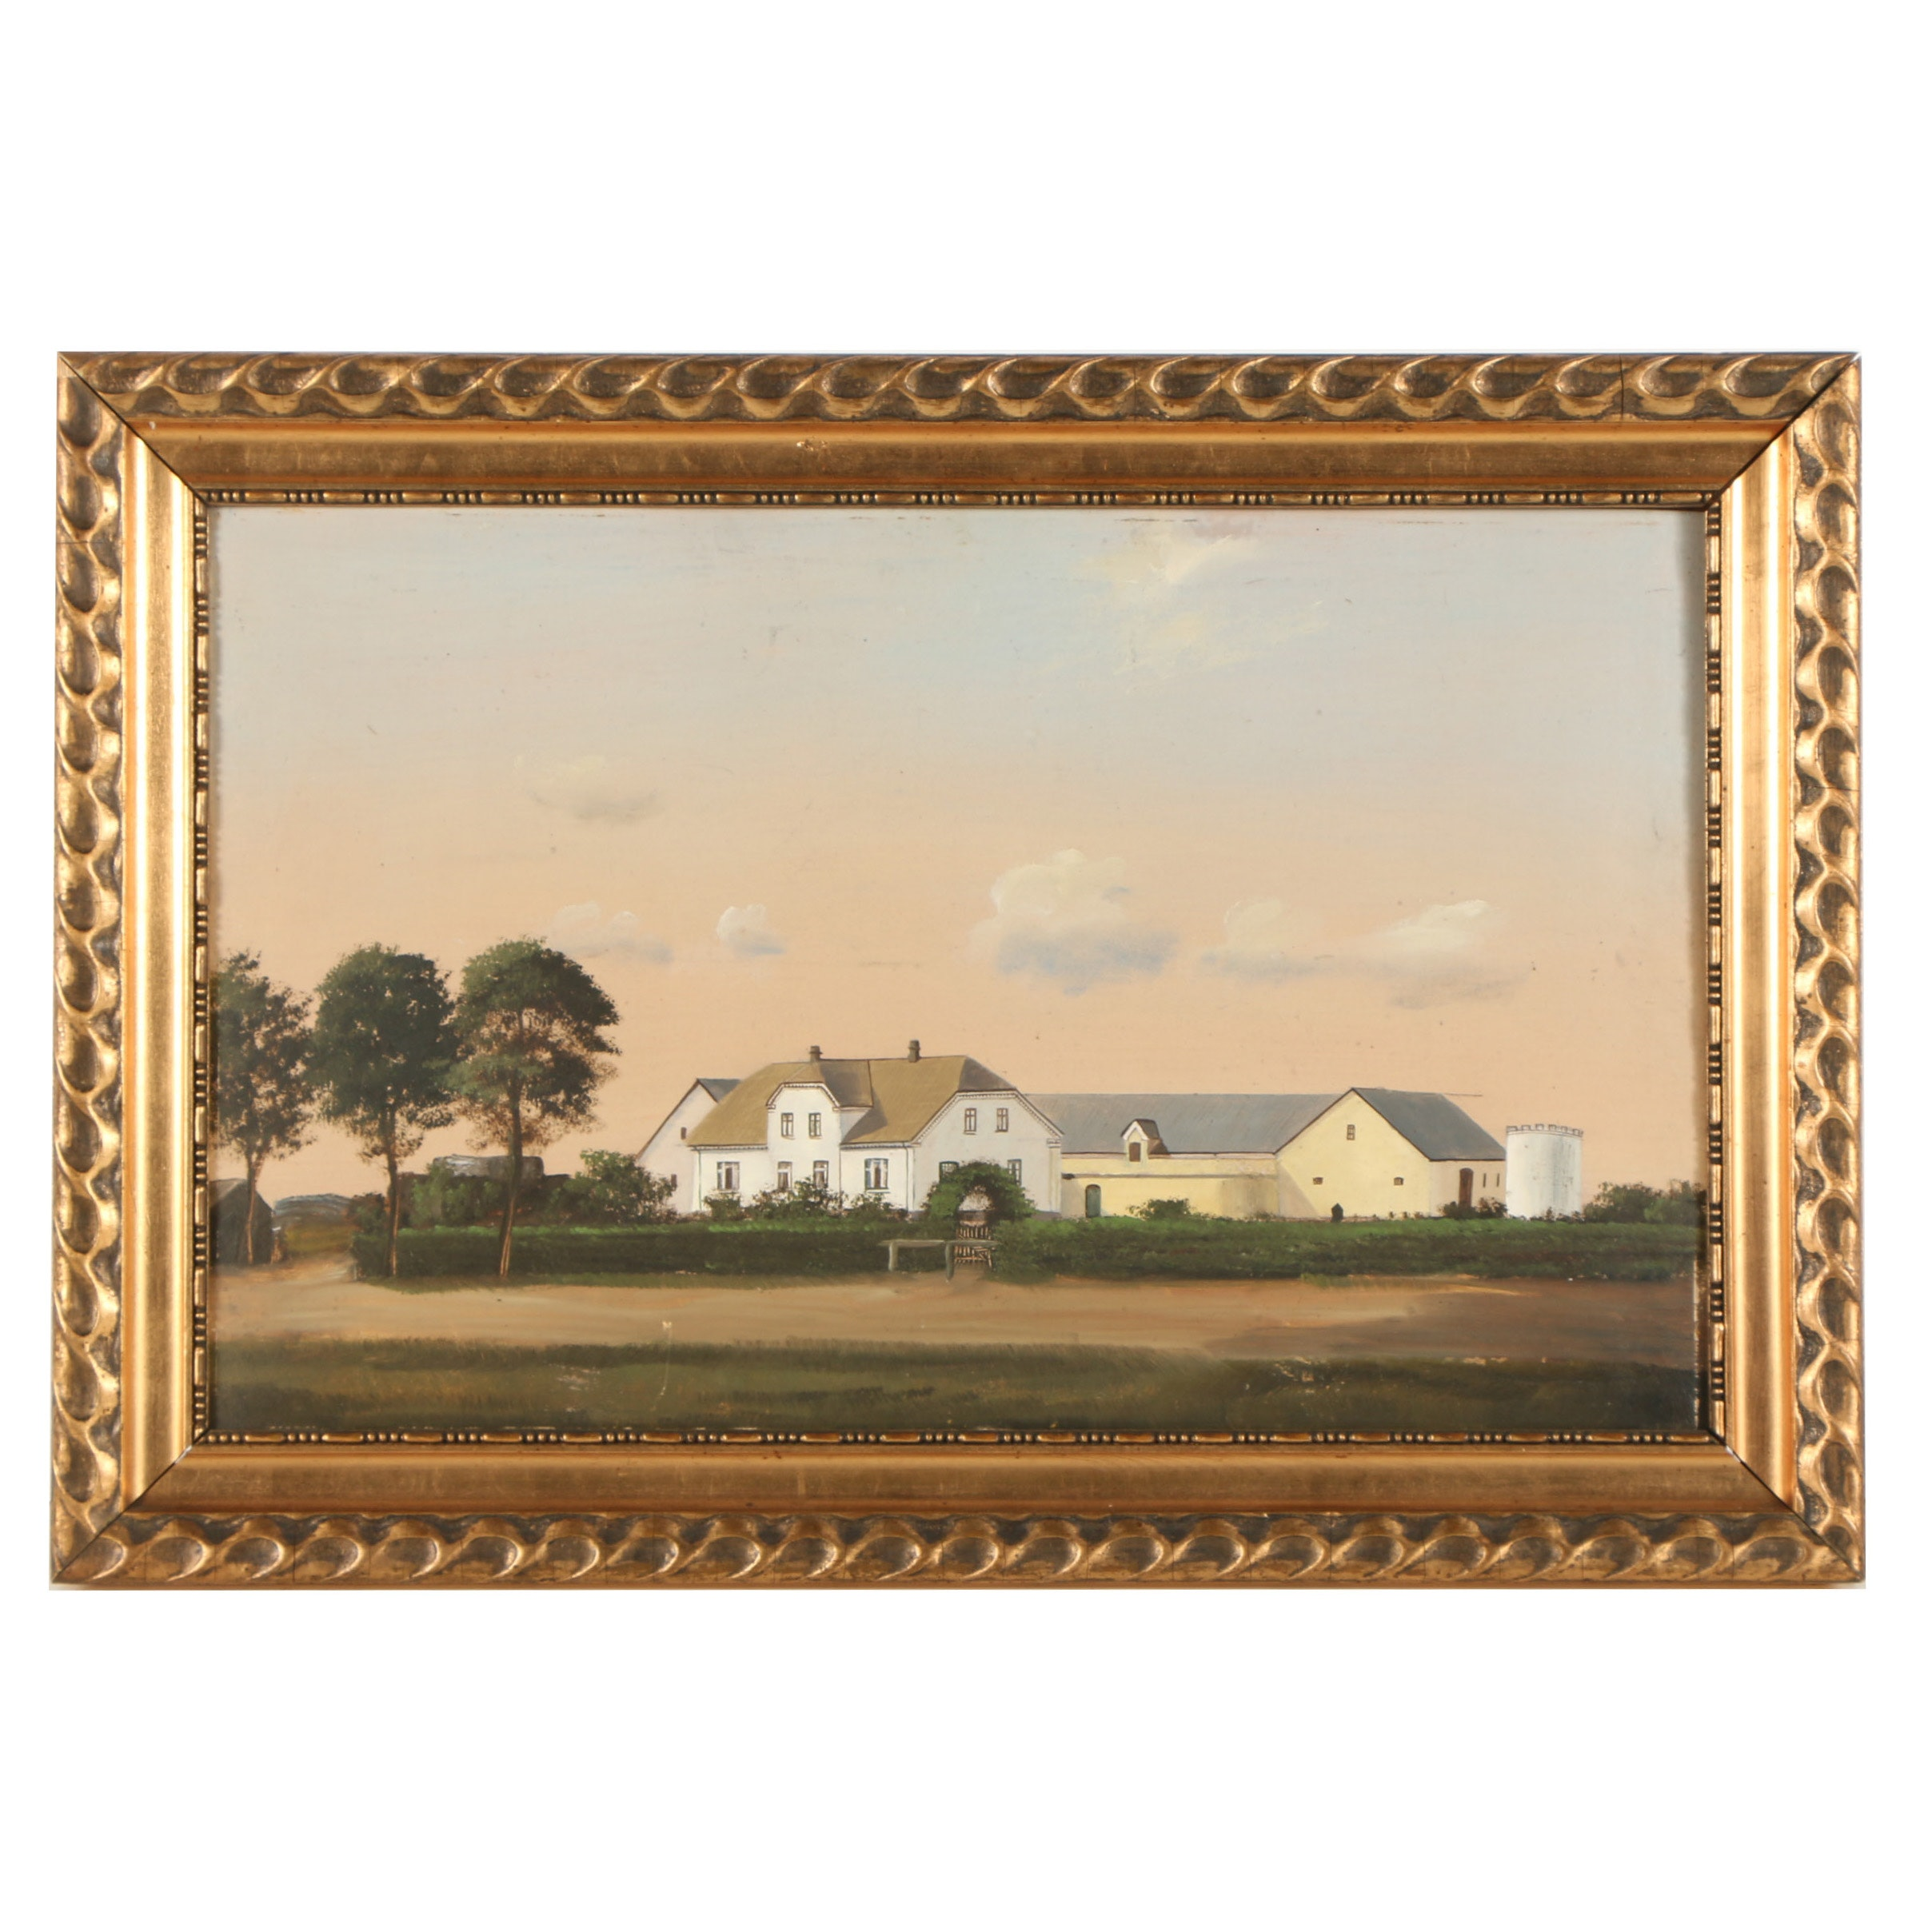 20th-Century Gouache on Paperboard Painting of a Farmstead